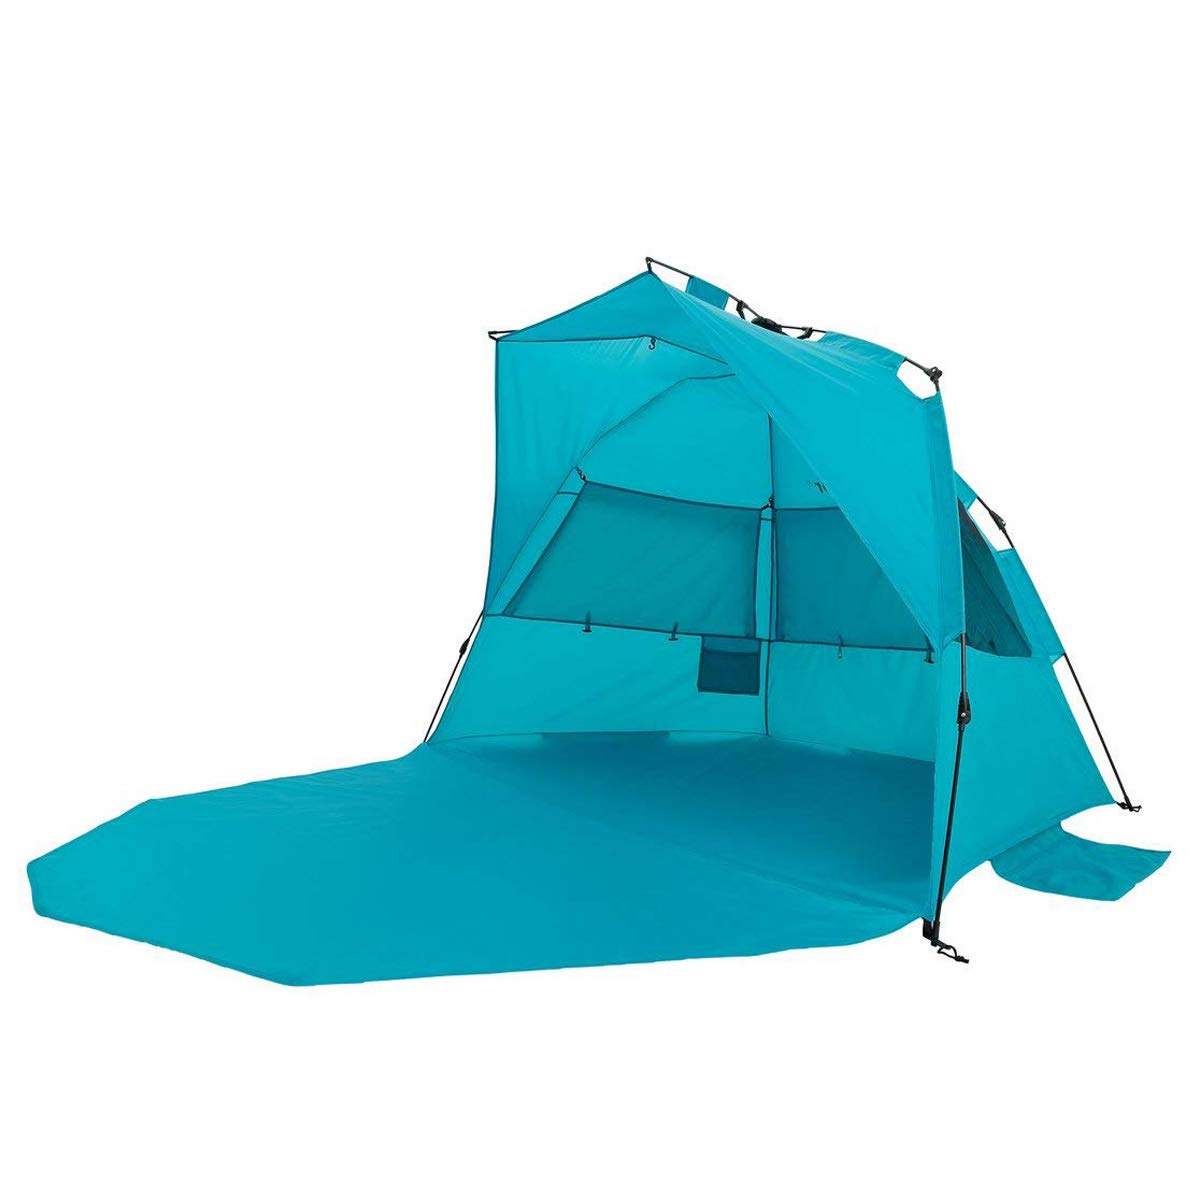 Alvantor Beach Tent Super Bluecoast Beach Umbrella Outdoor Sun Shelter Cabana Automatic Pop Up UPF 50 Sun Shade Portable Camping Fishing Hiking Canopy Easy Setup Patent Pending 3 or 4 Person